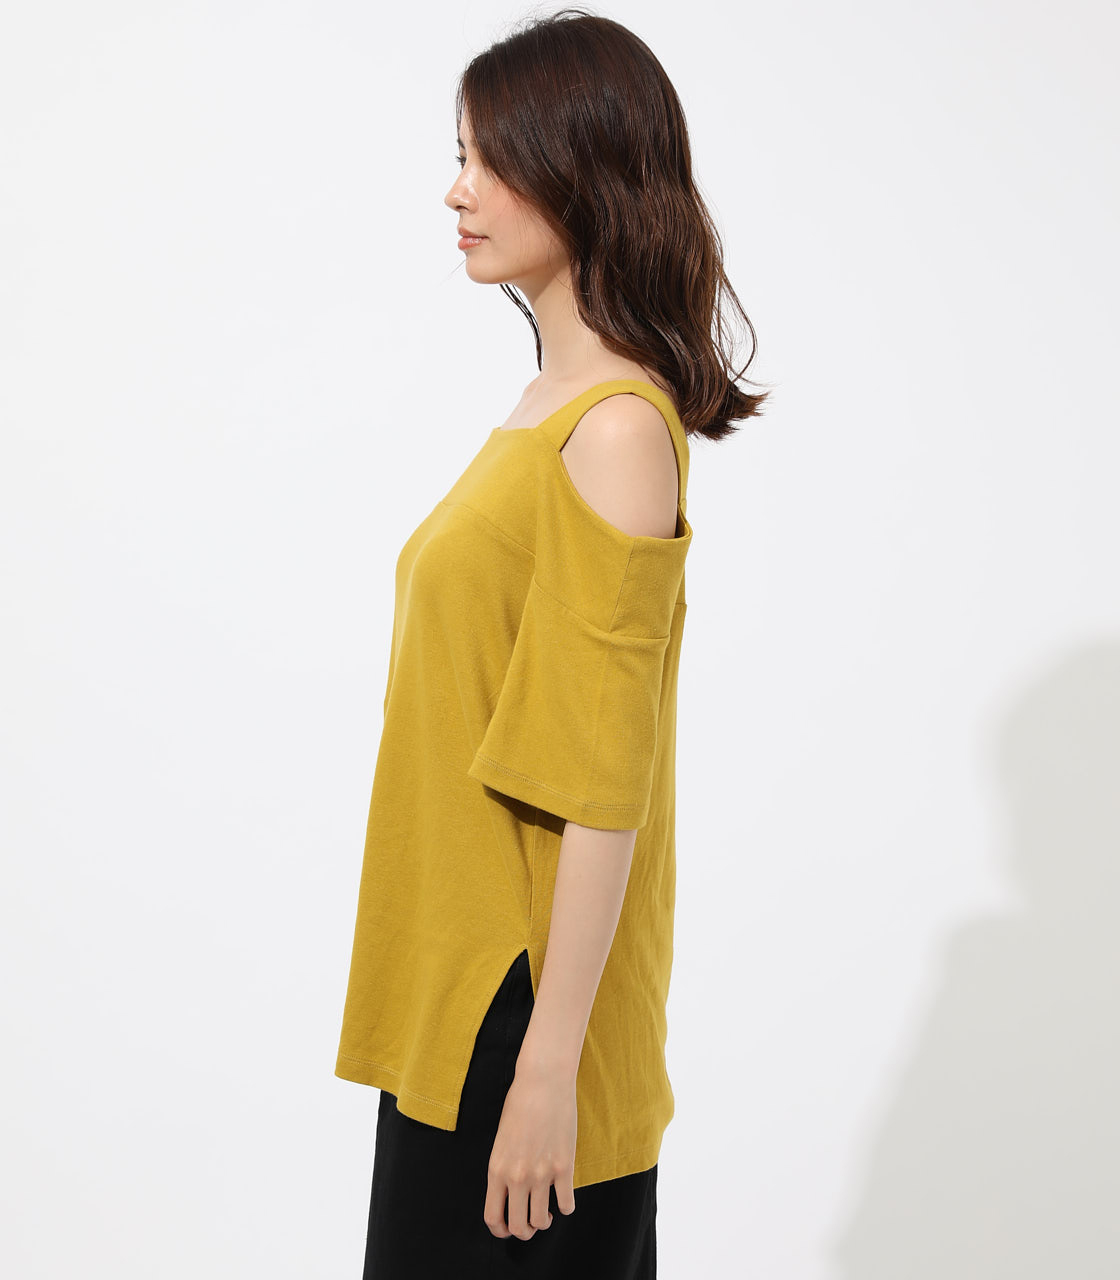 WIDE STRAP OPEN SHOULDER TOPS 詳細画像 D/YEL 5